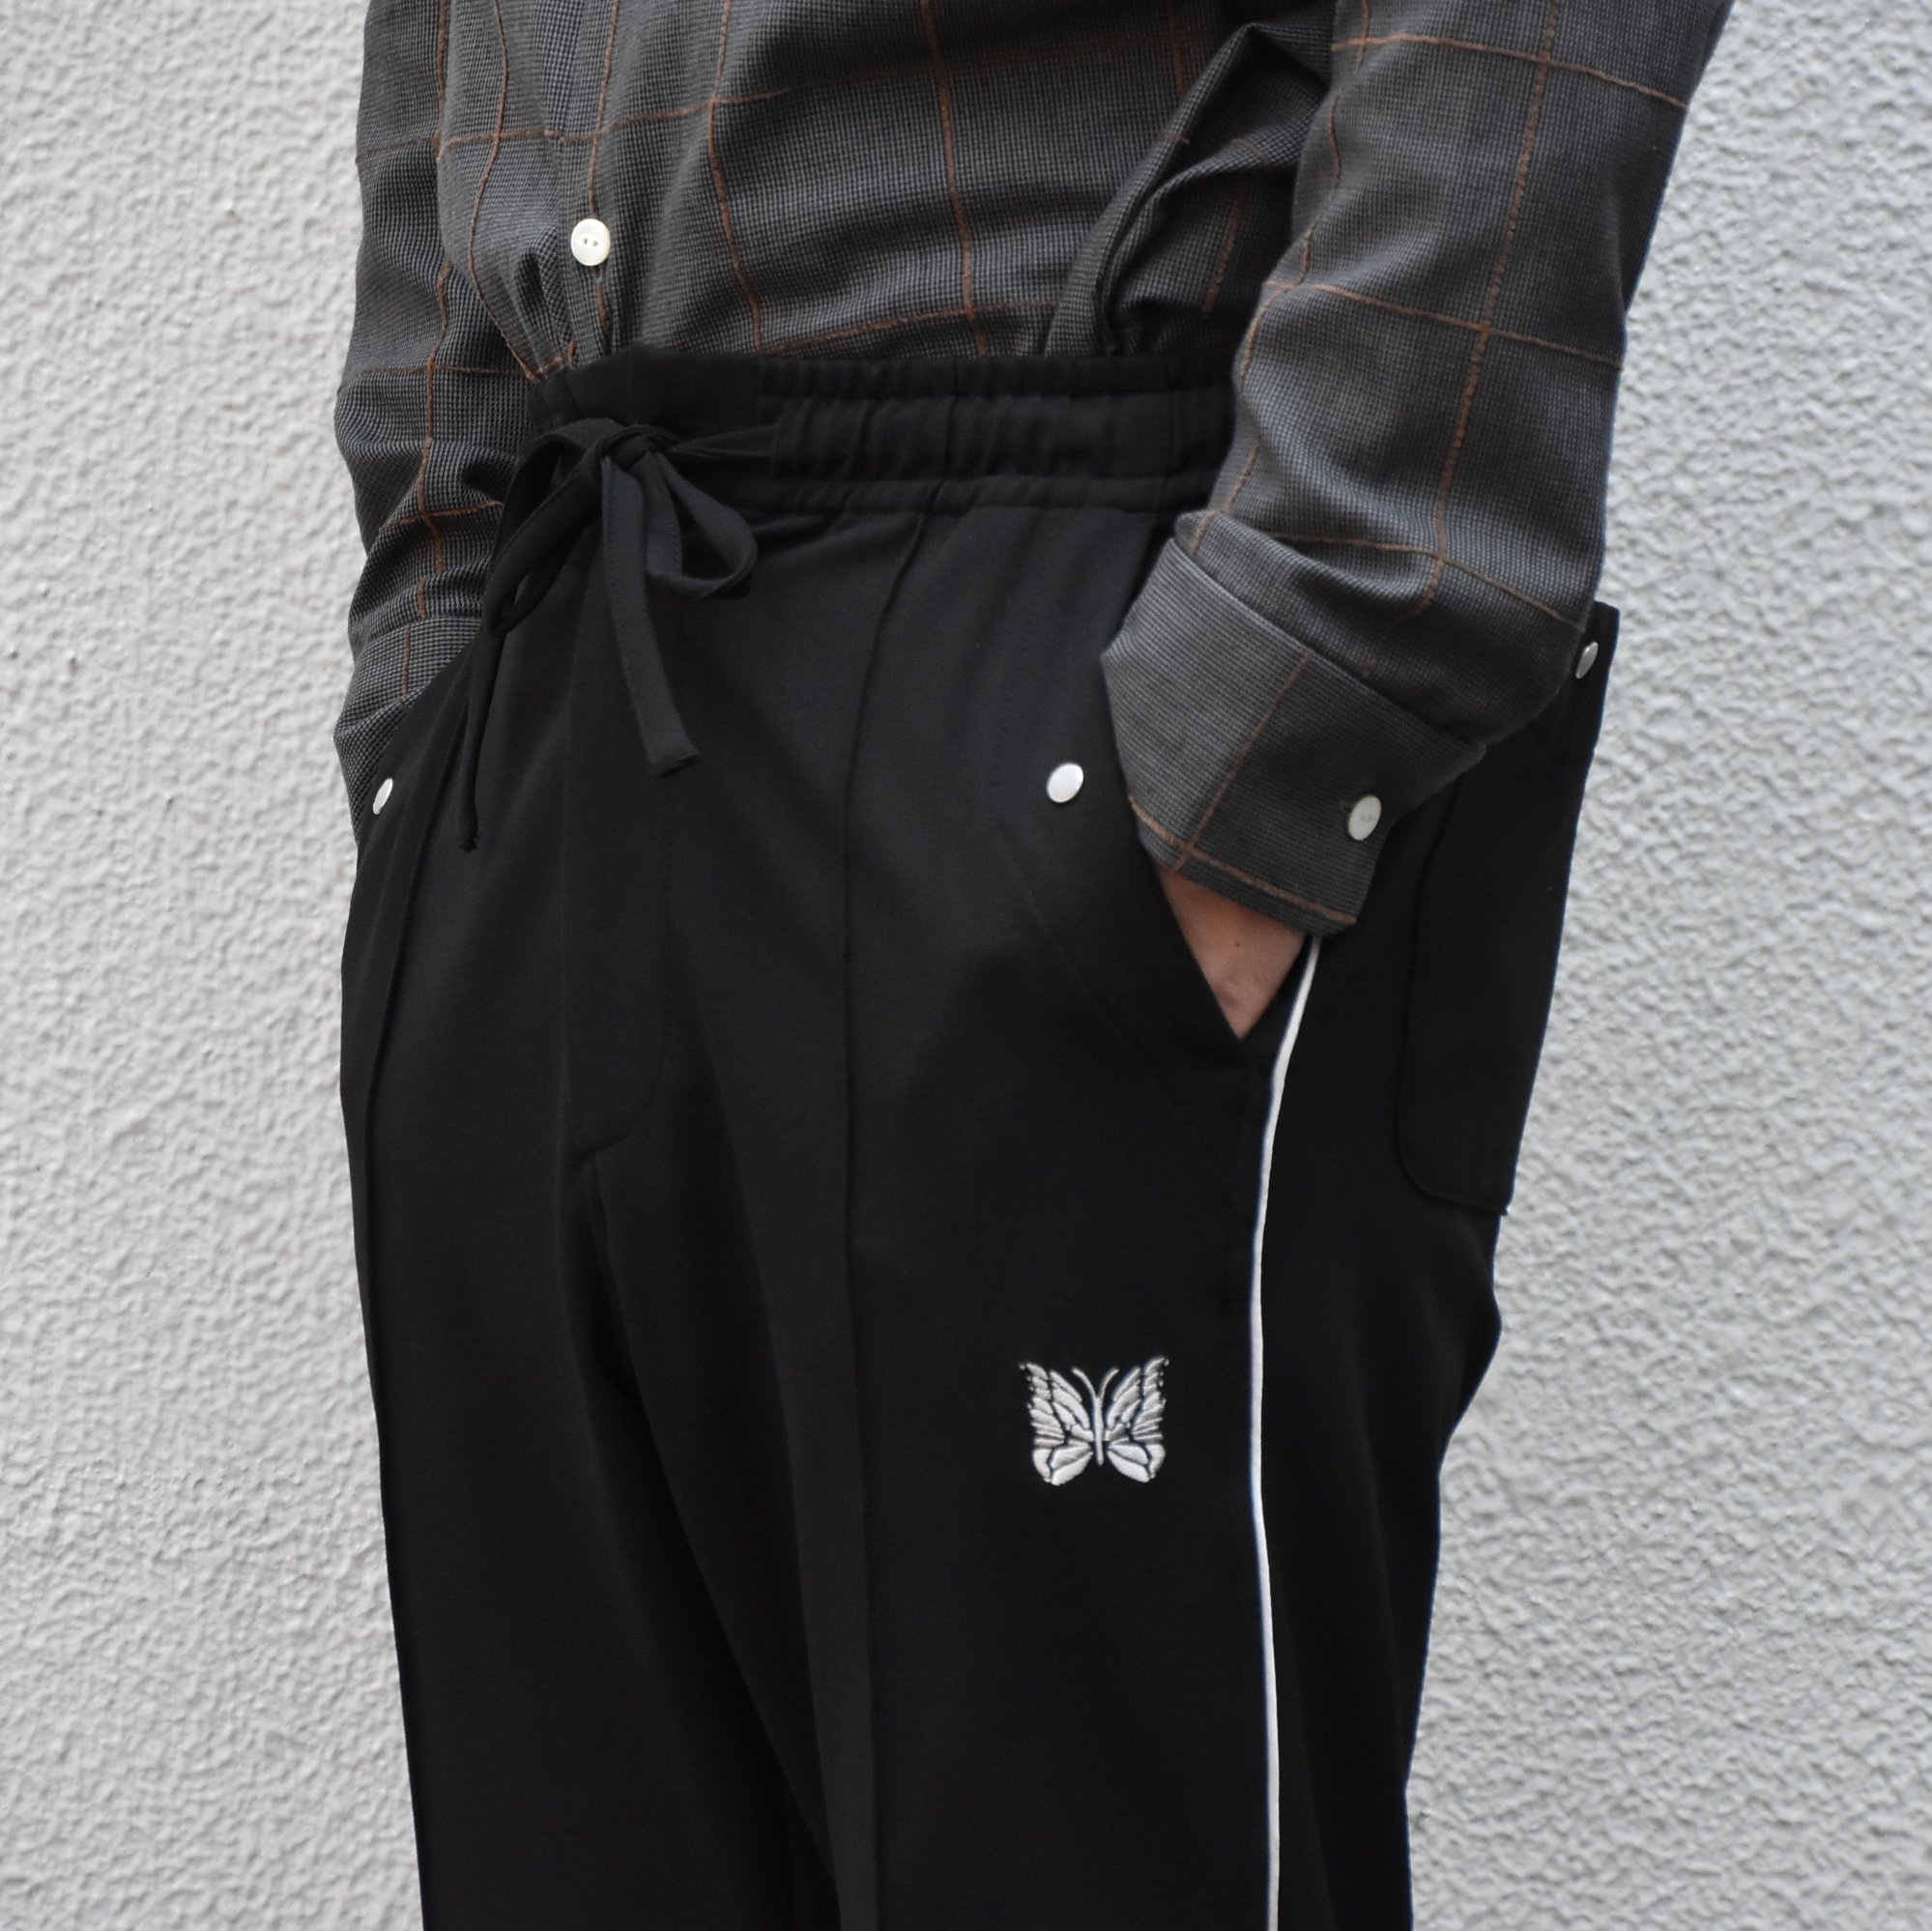 【2020】NEEDLES(ニードルス) Piping cowboy pants -BLACK- #HM-135(8)